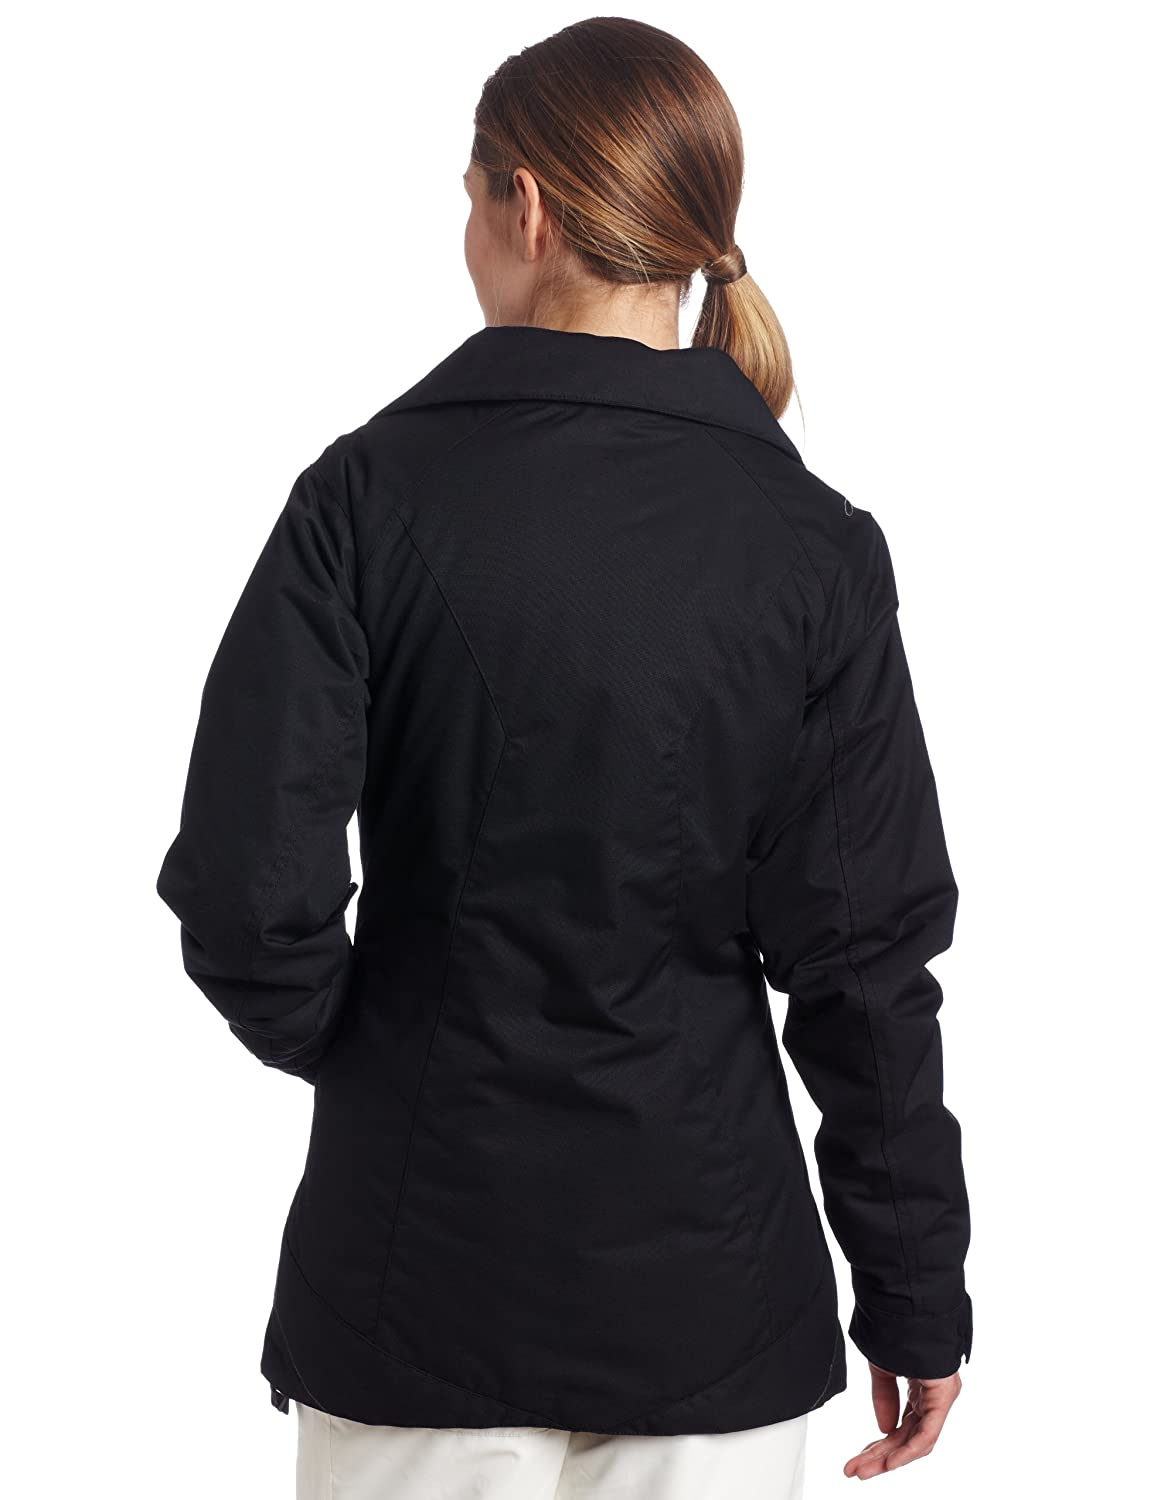 Amazon.com: Oakley Womens Eaves 2.0 Jacket, Black, Medium: Sports & Outdoors